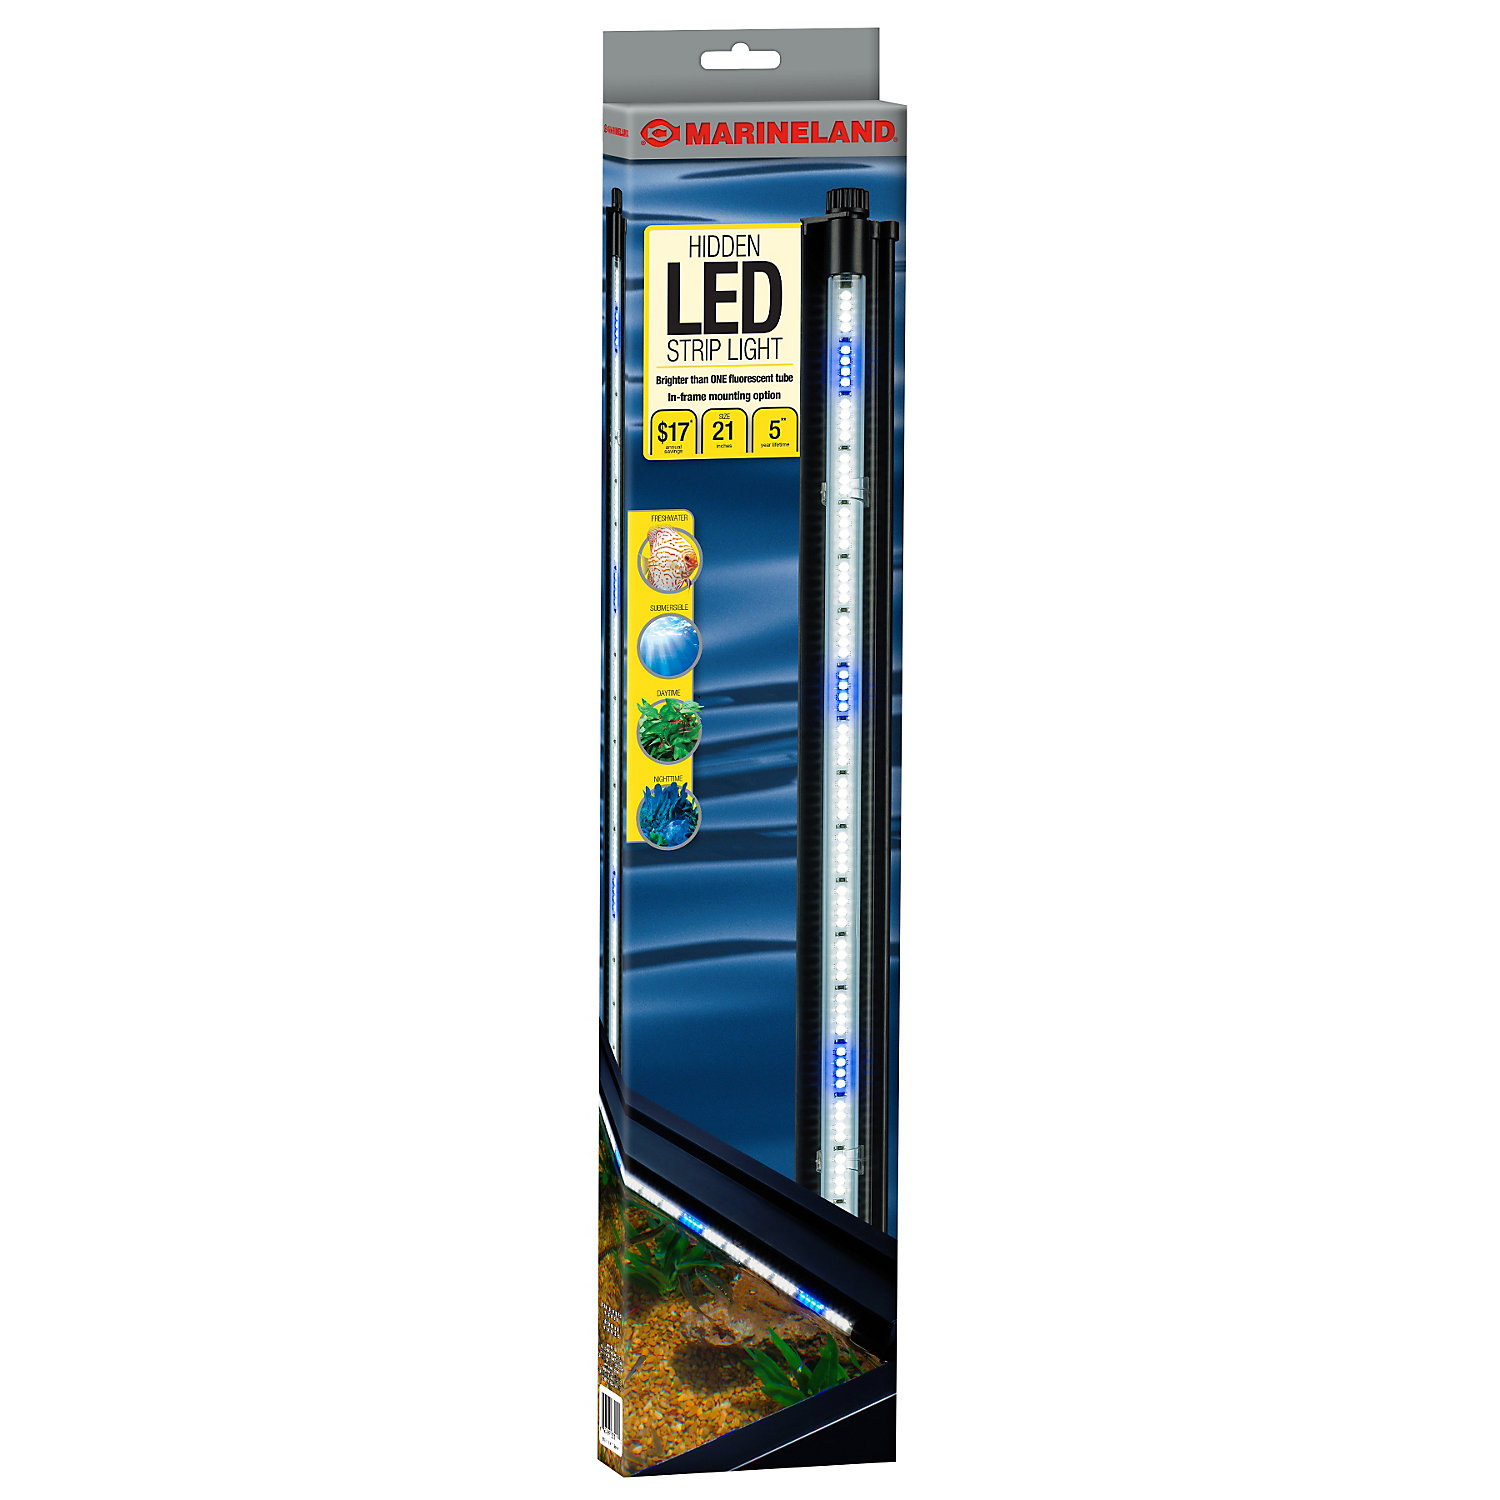 Marineland Hidden Led Lighting System 21 Length